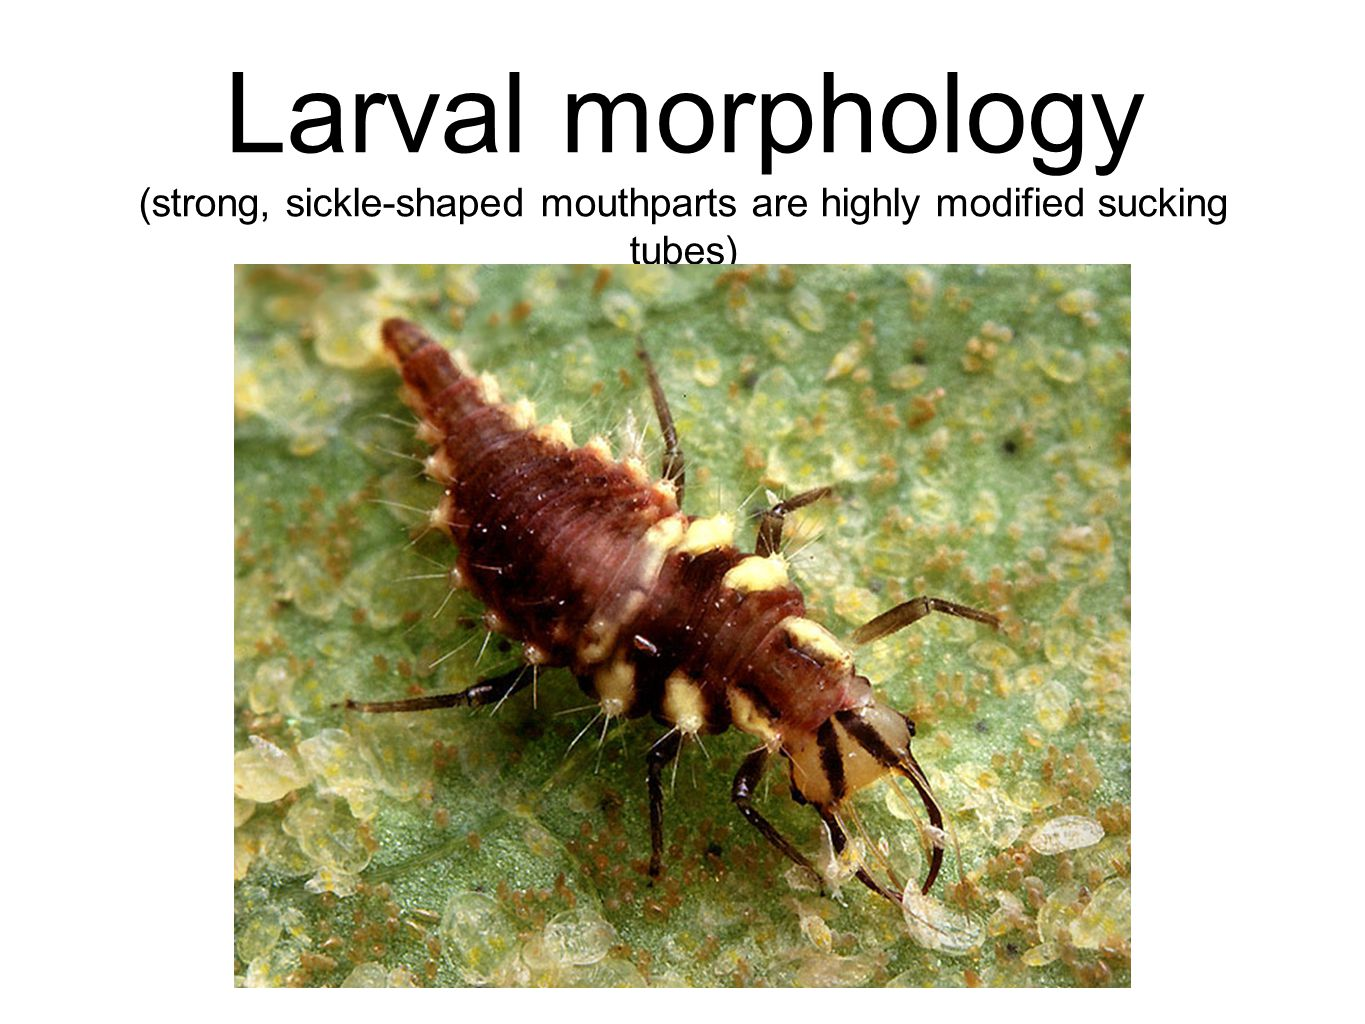 Larval morphology (strong, sickle-shaped mouthparts are highly modified sucking tubes)